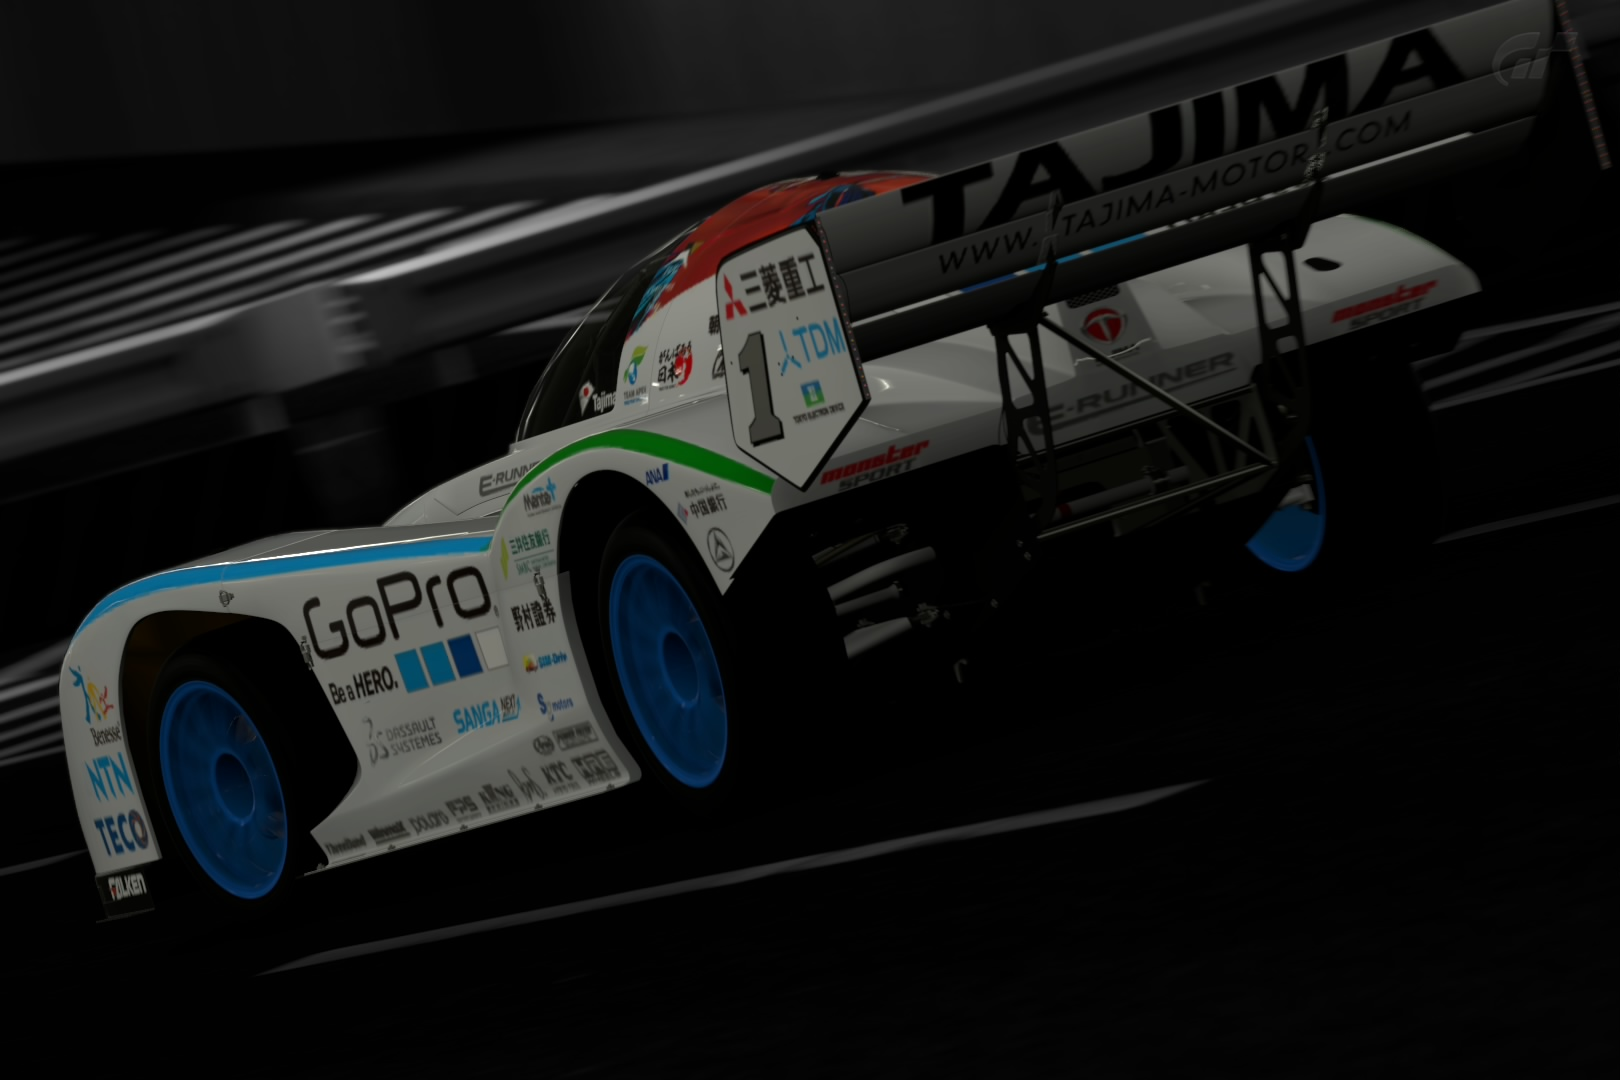 Tajima Monster Sport E-RUNNER WRC - by Riki